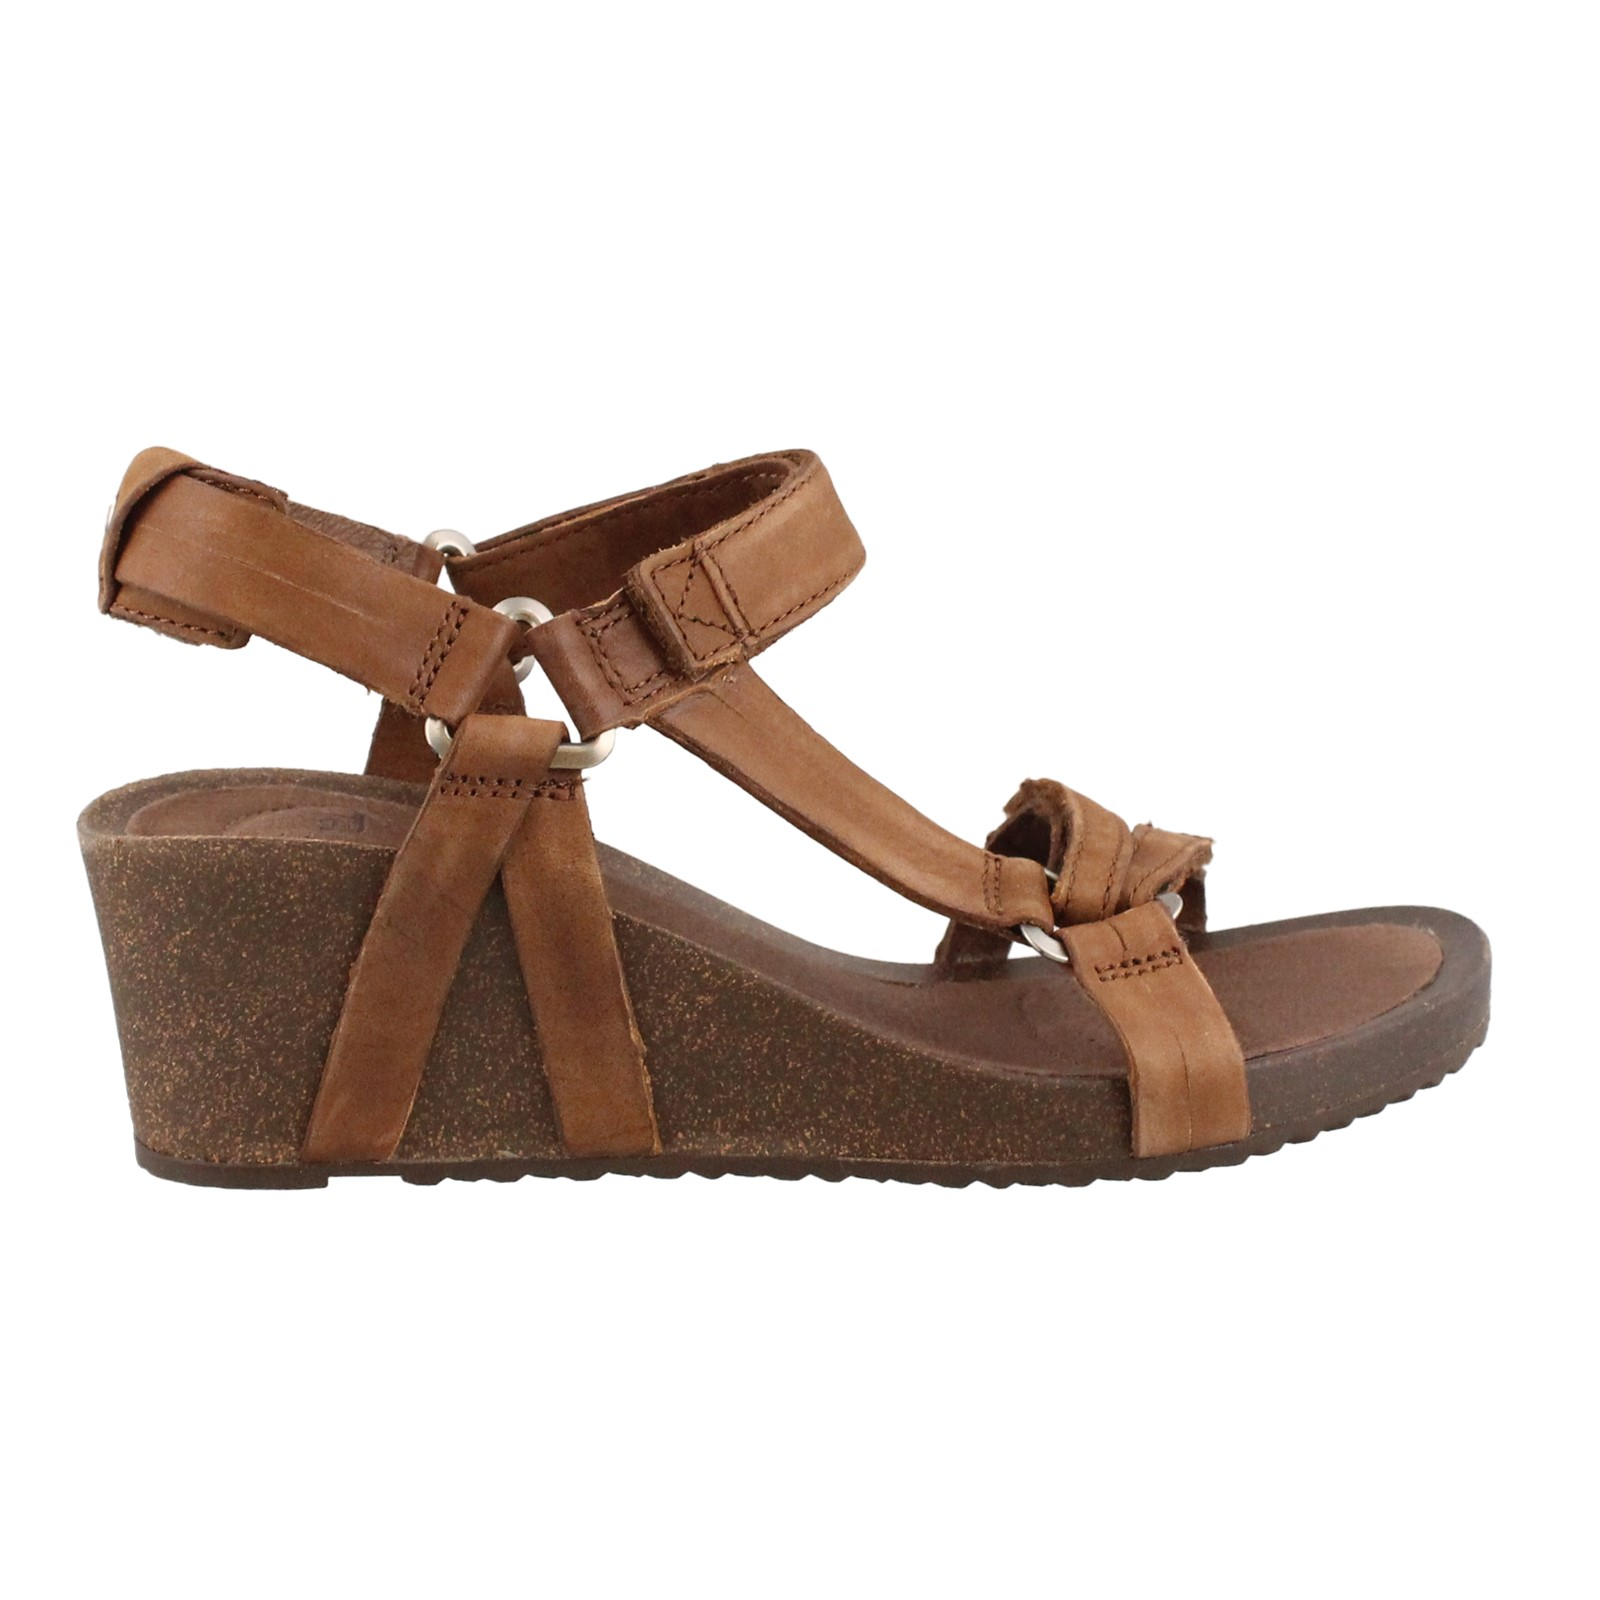 Women's Teva, Sidro Universal Wedge Sandals